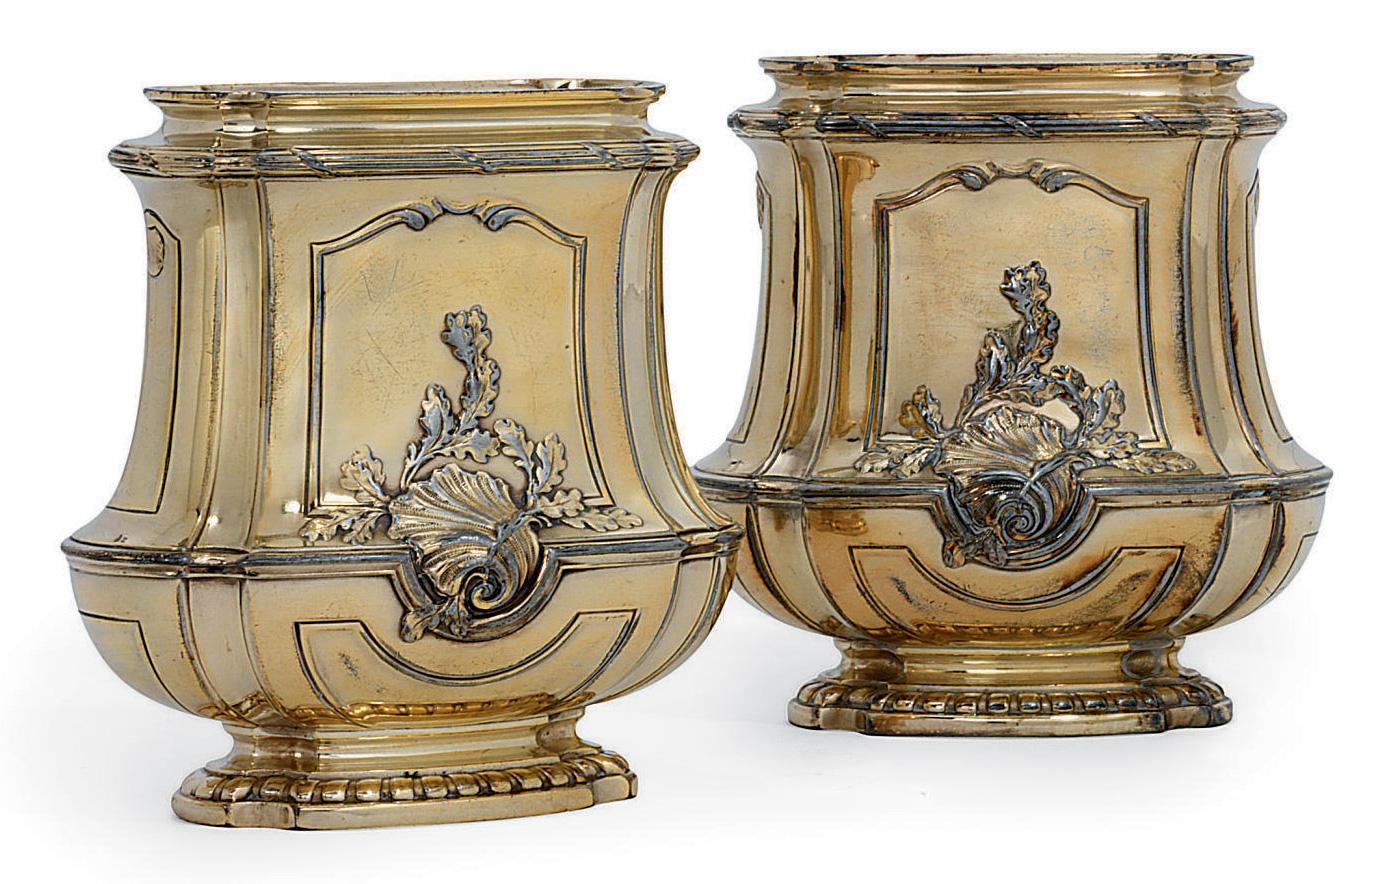 A PAIR OF FRENCH SILVERED METAL VASES